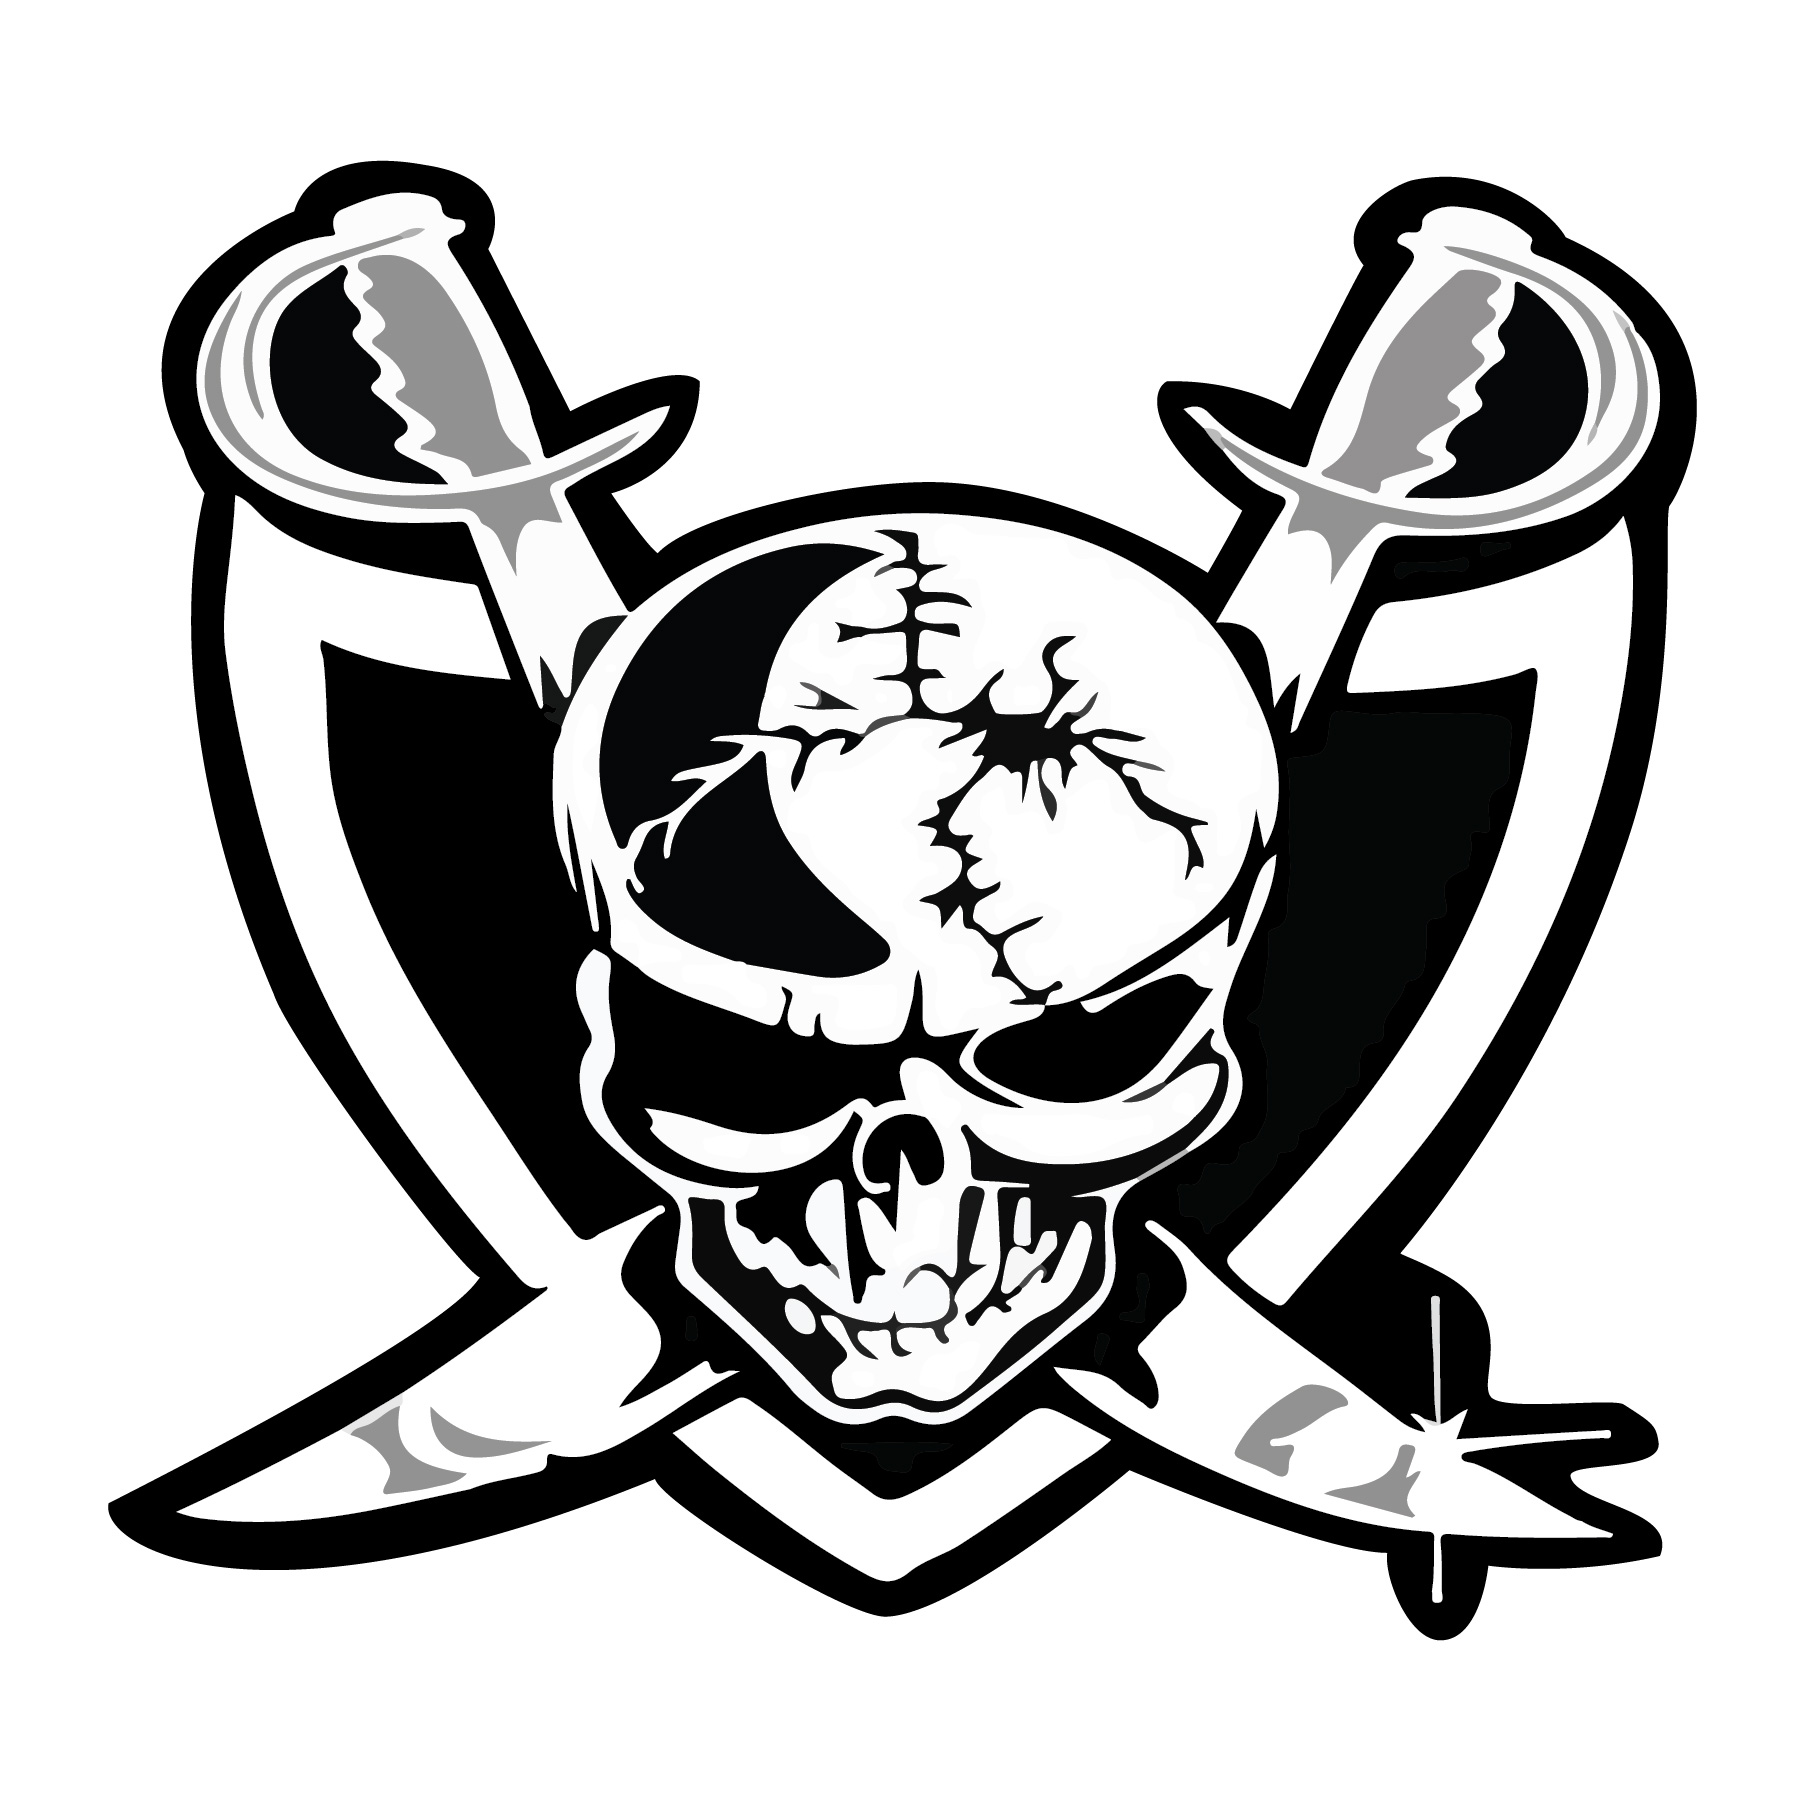 raiders coloring pages oakland raiders coloring pages coloring raiders pages